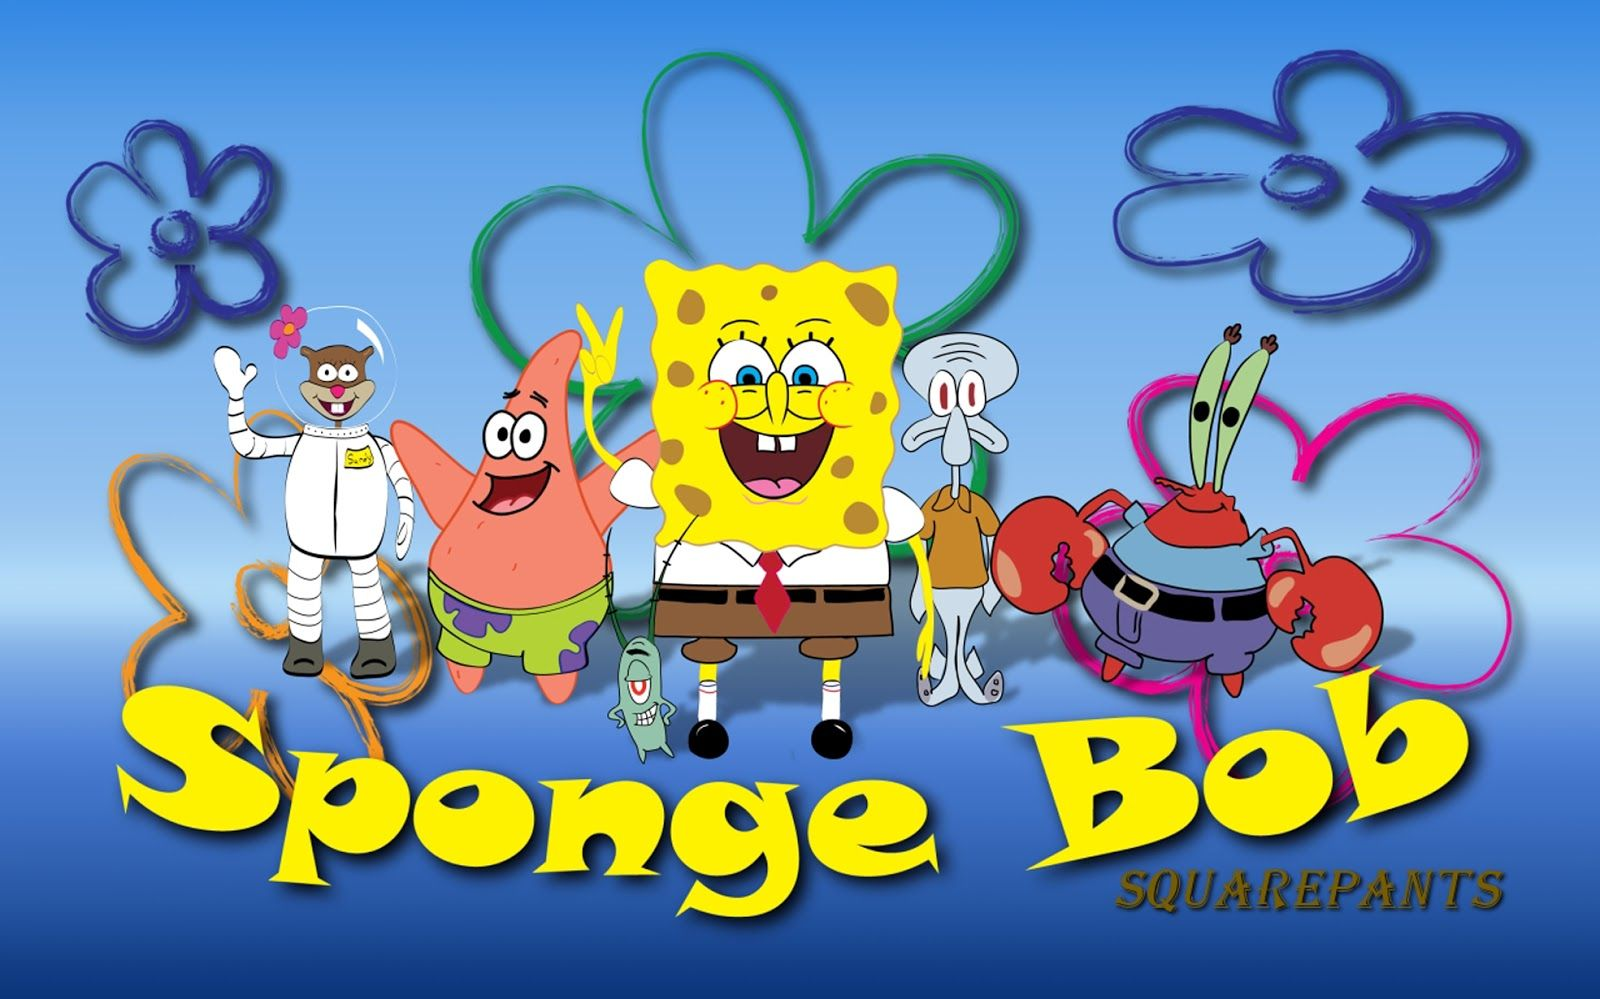 spongebob spongebob squarepants wallpaper exo pinterest 1920×1080